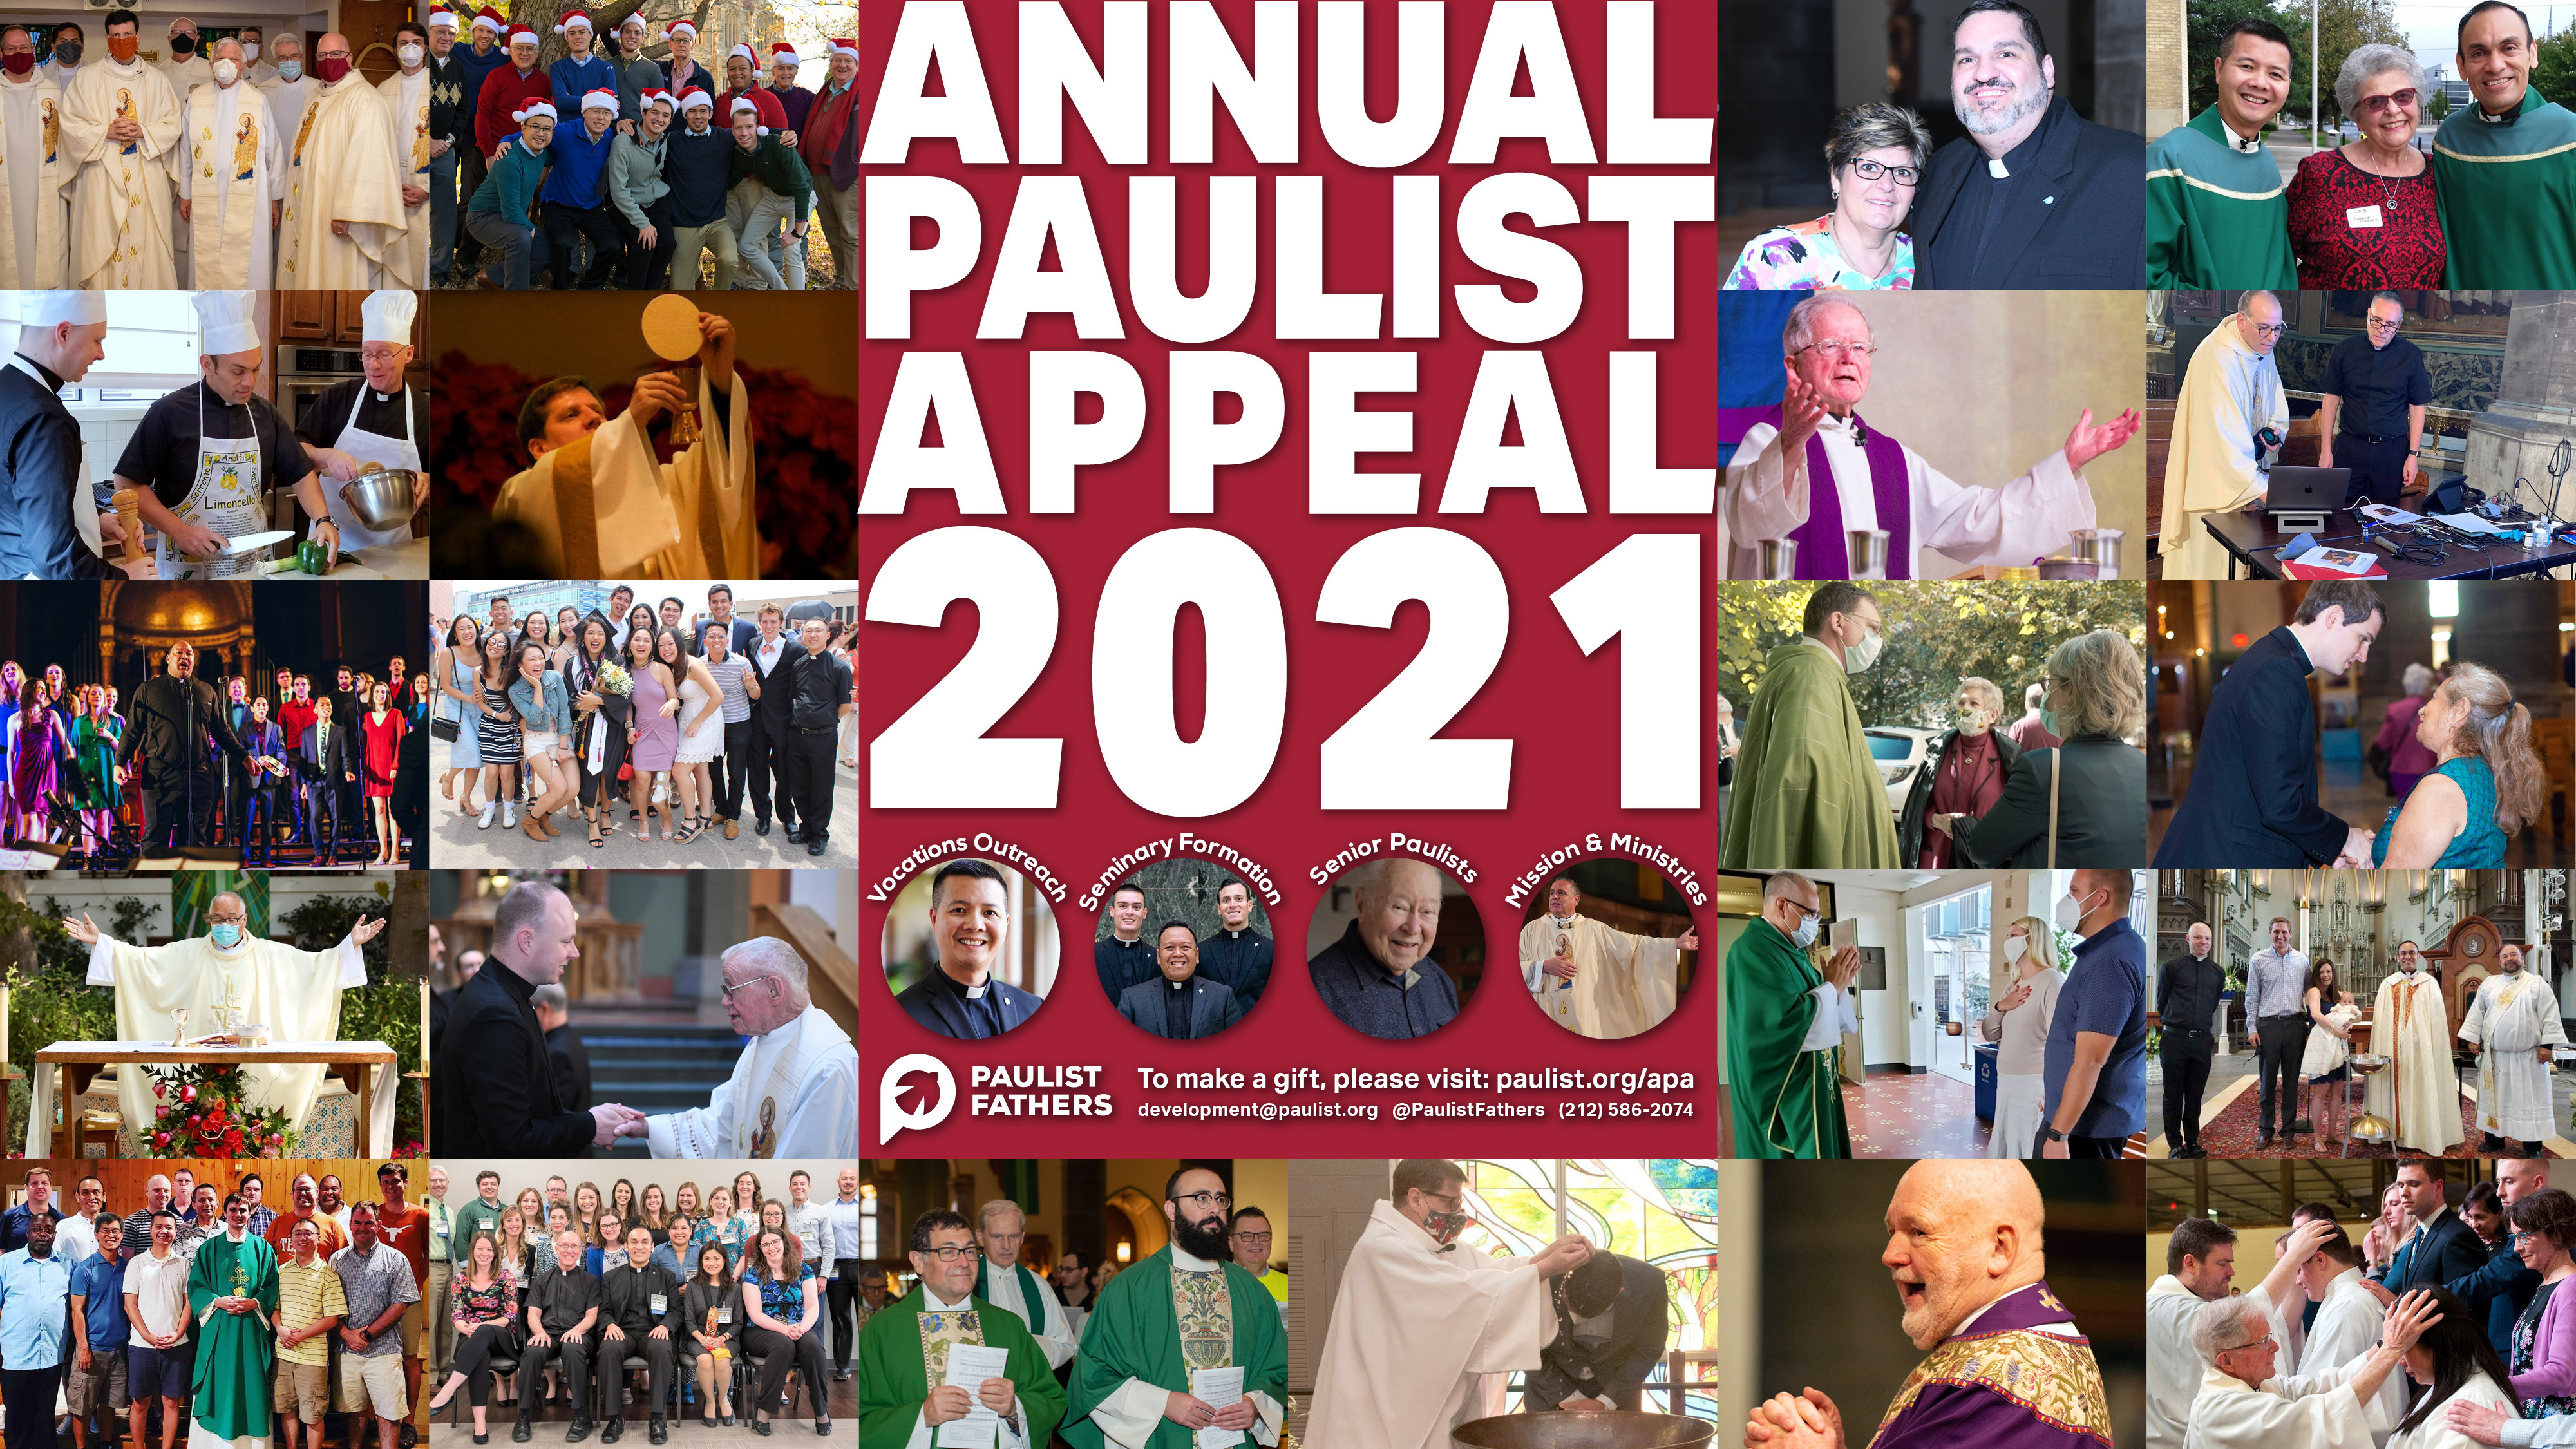 WATCH NOW: Annual Paulist Appeal